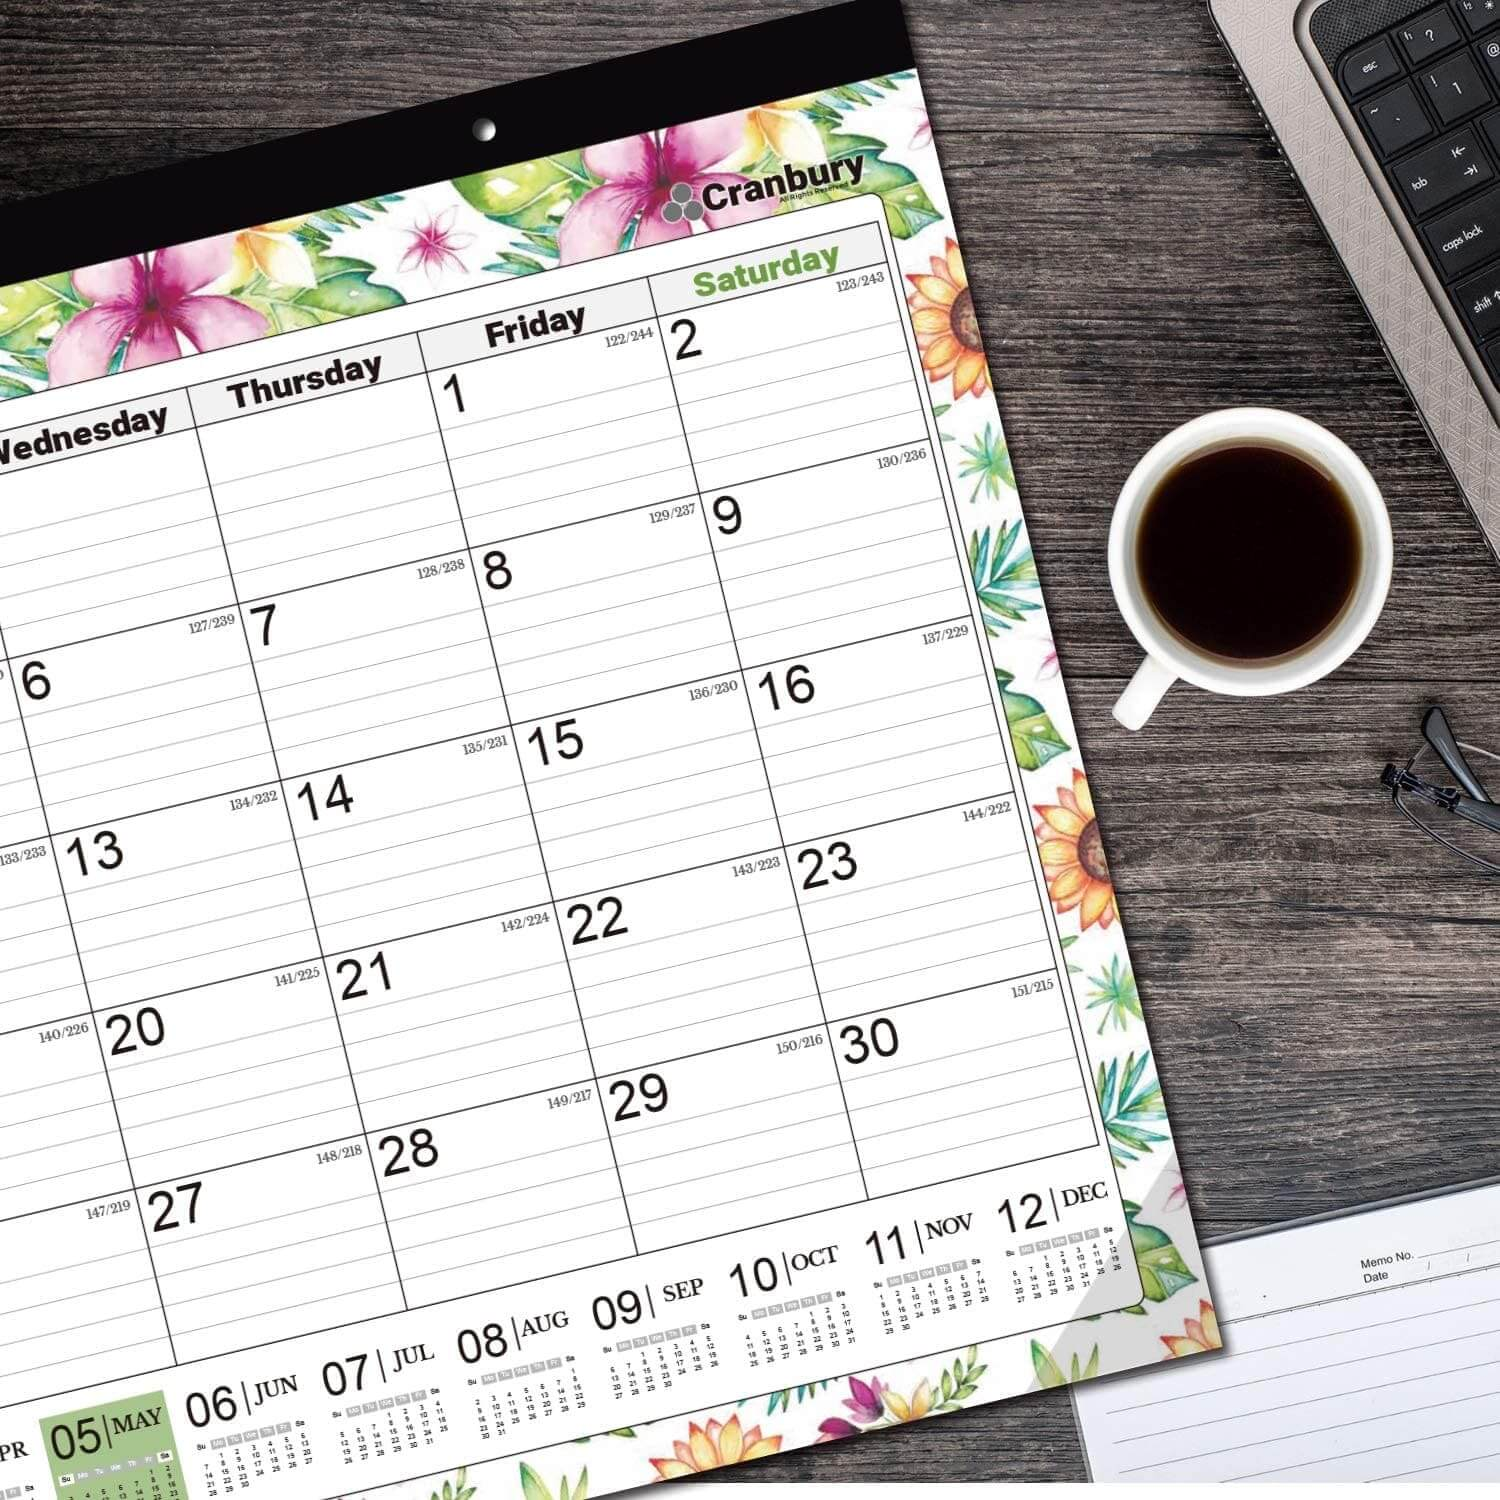 A floral desk calendar with a cup of coffee next to it.